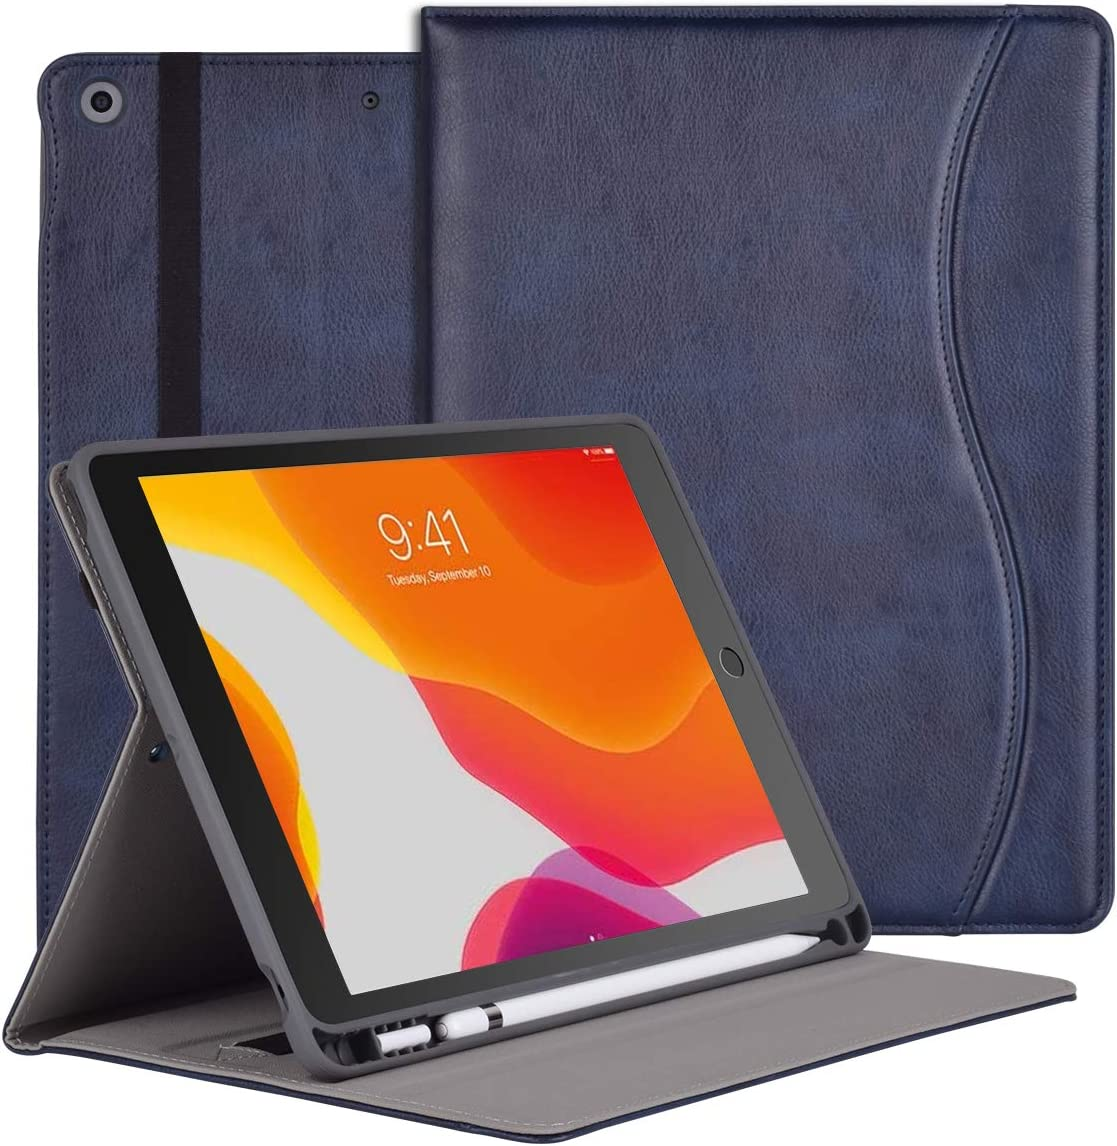 iPad 10.2 Case for iPad 8th Generation 2020 & iPad 7th Gen 2019, Premium Multiple Viewing Angles Standing Leather Folio Protective Cover with Pencil Holder and Pocket / Auto Wake/Sleep- Blue